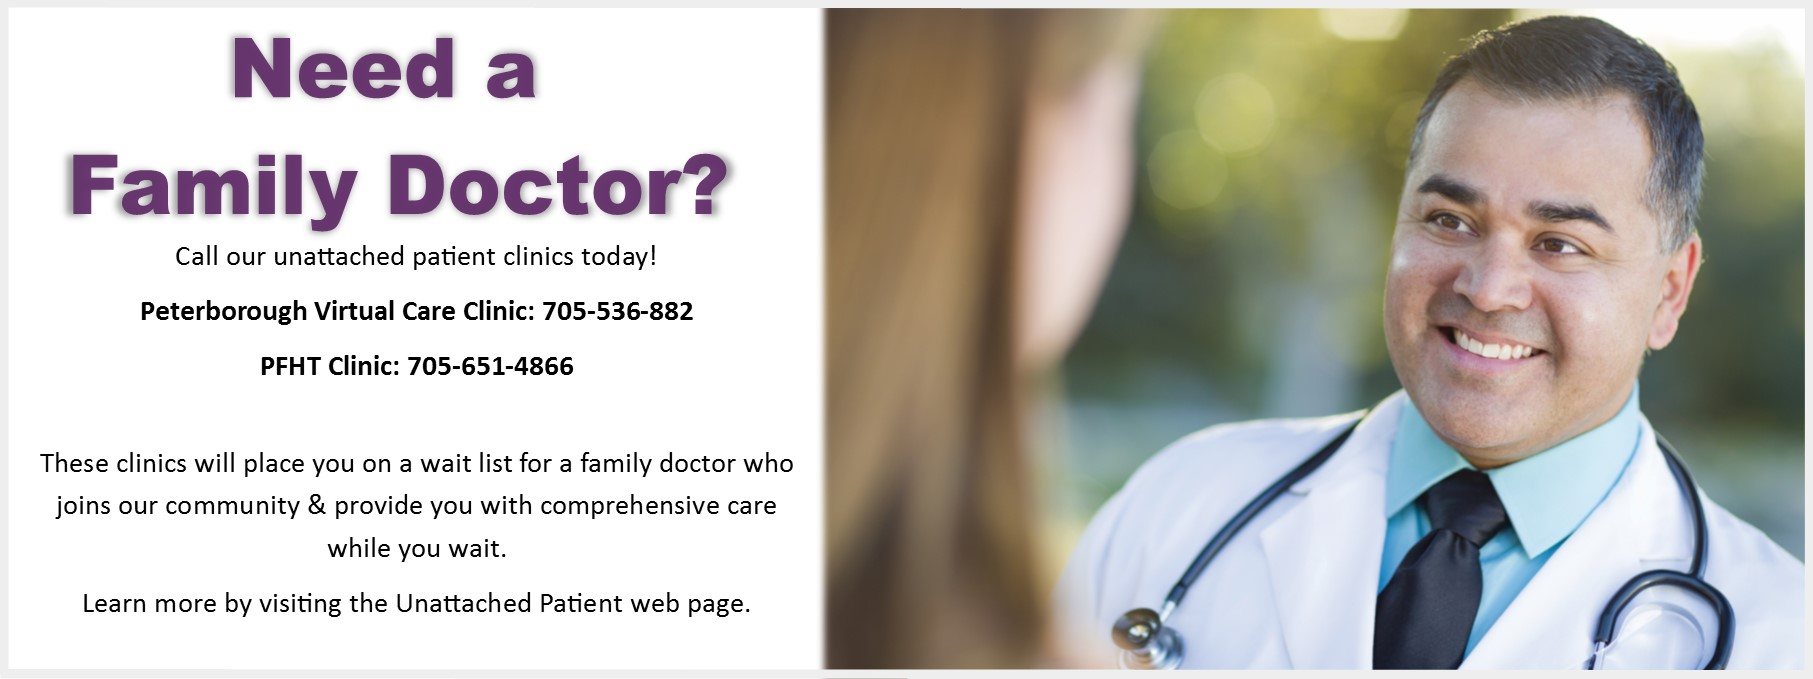 Need Family Doctor Peterborough